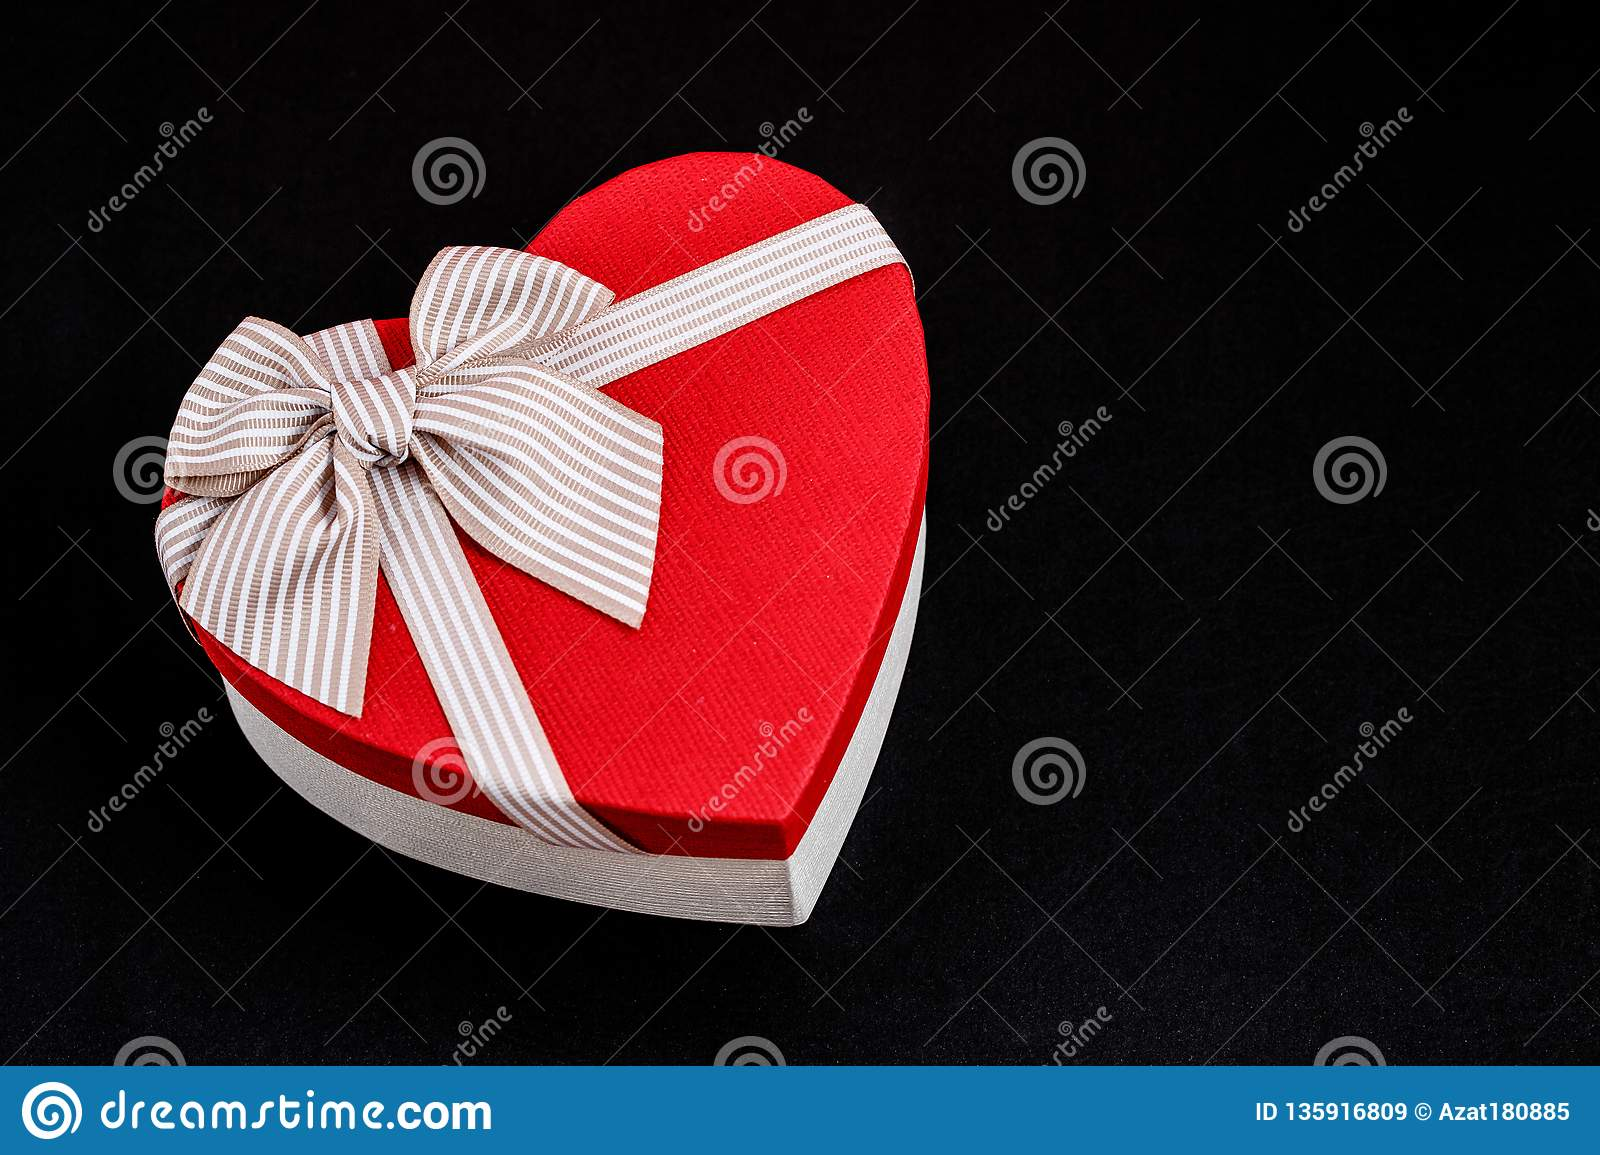 Gift box in the shape of a heart with a ribbon on a bla background. The concept is suitable for love stories, birthdays and Valent